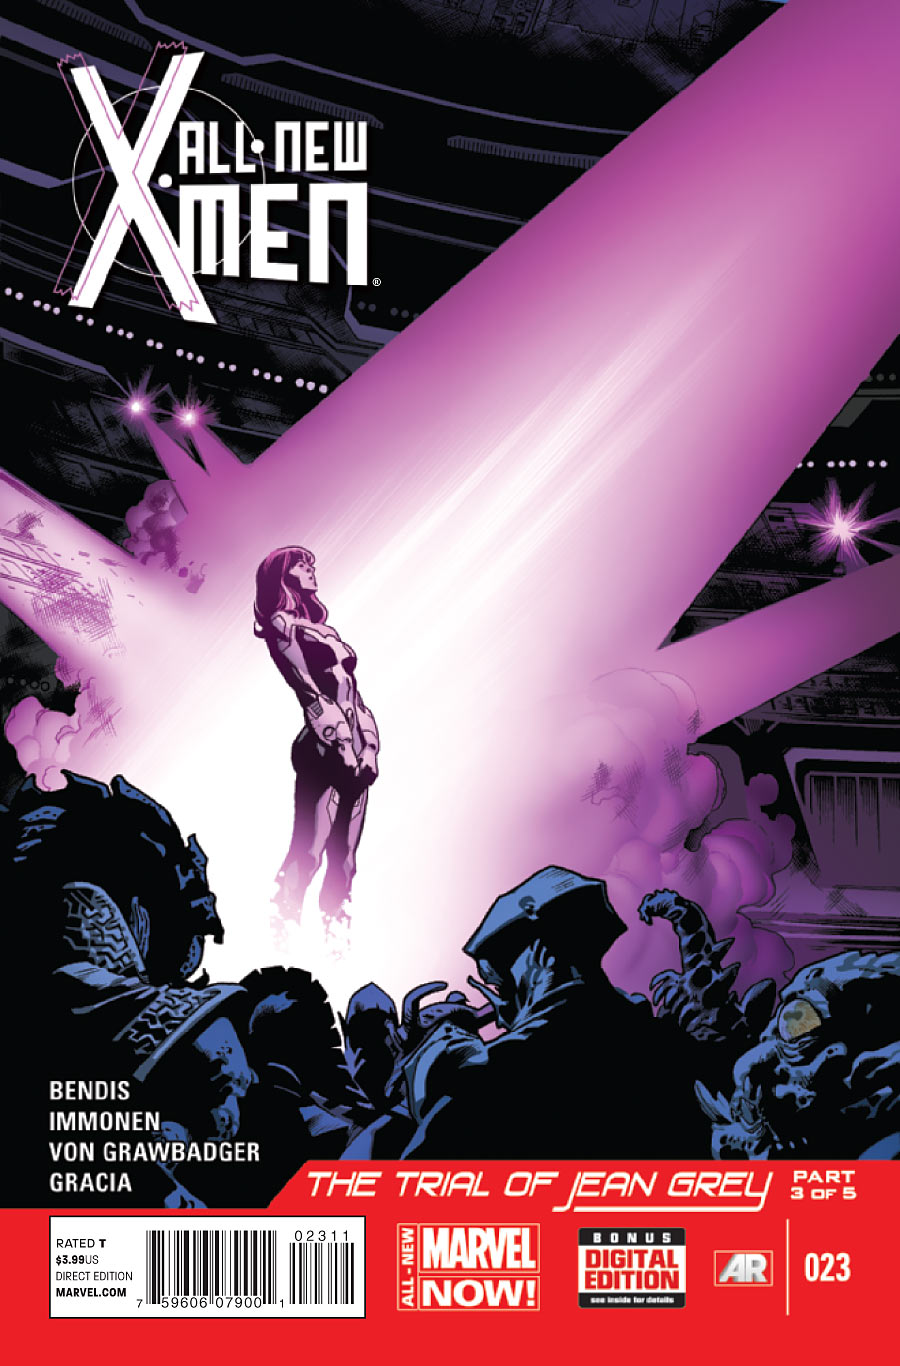 All-New X-Men Volume 4 : All-Different Bendis Peterson Immonen (2014, Hardcover)